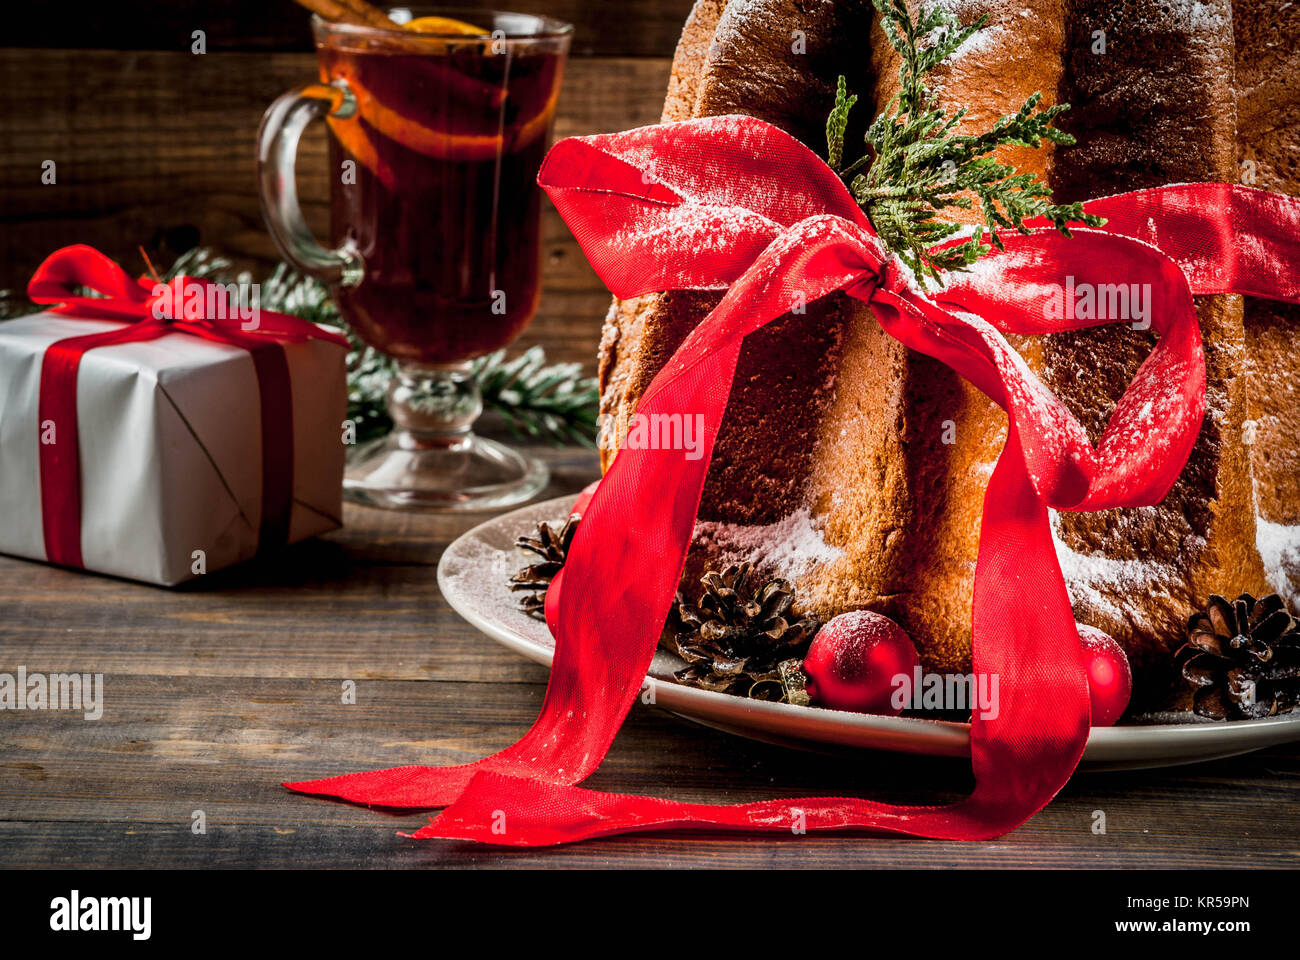 traditional italian christmas fruit cake panettone pandoro with festive red ribbon and christmas decorations gift box and mulled wine on wooden home